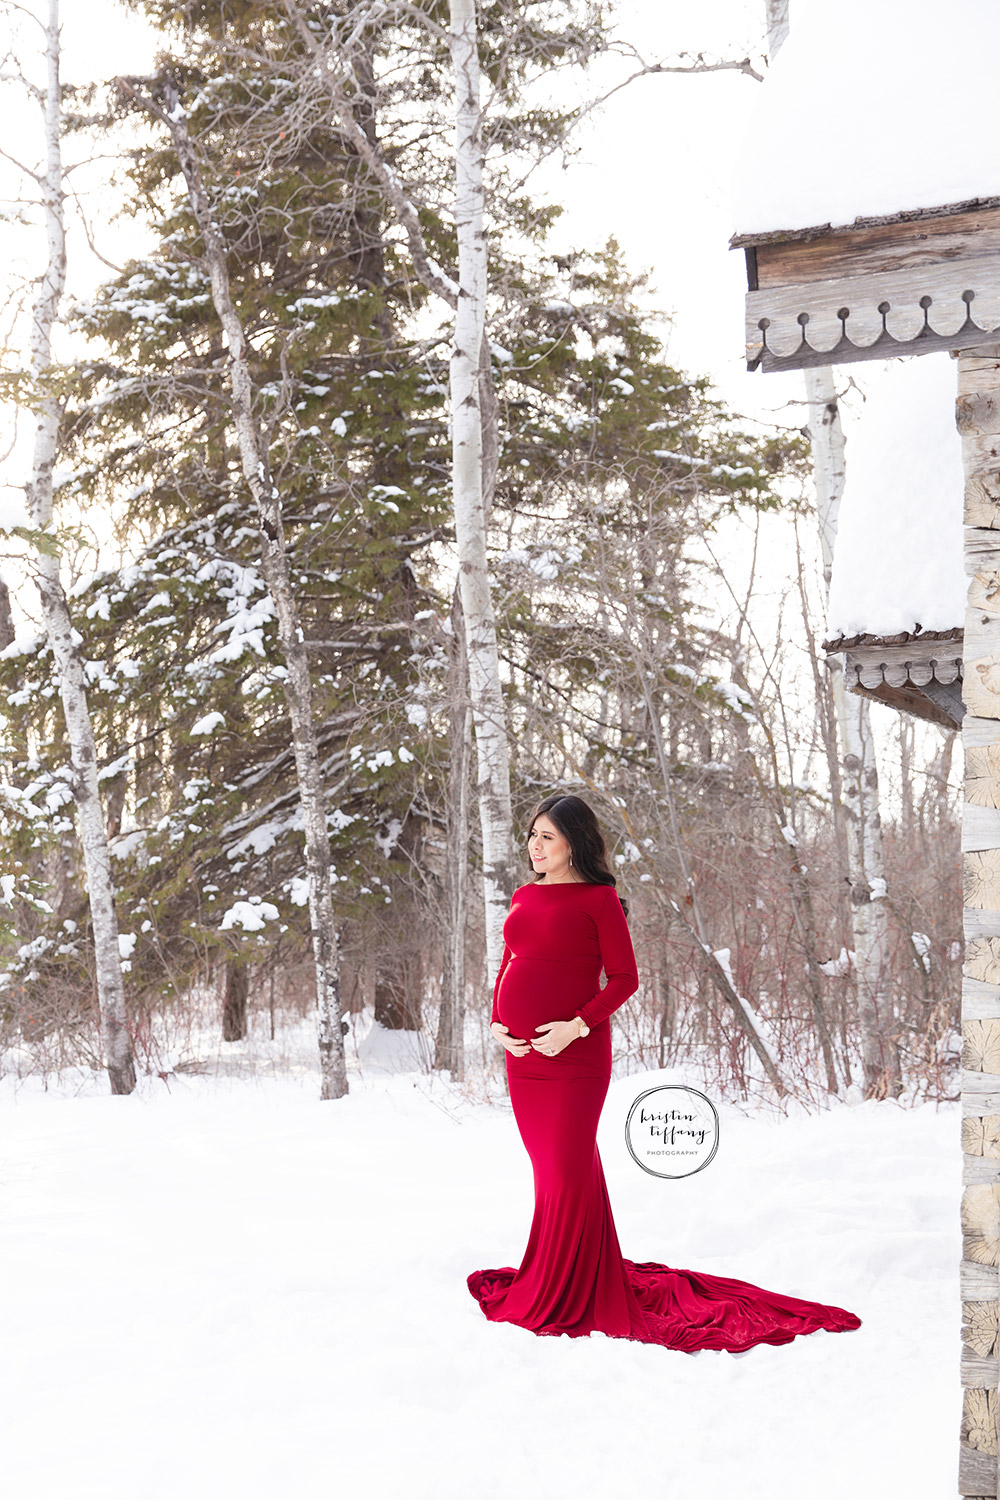 a maternity photo of a woman in a red gown in the snow